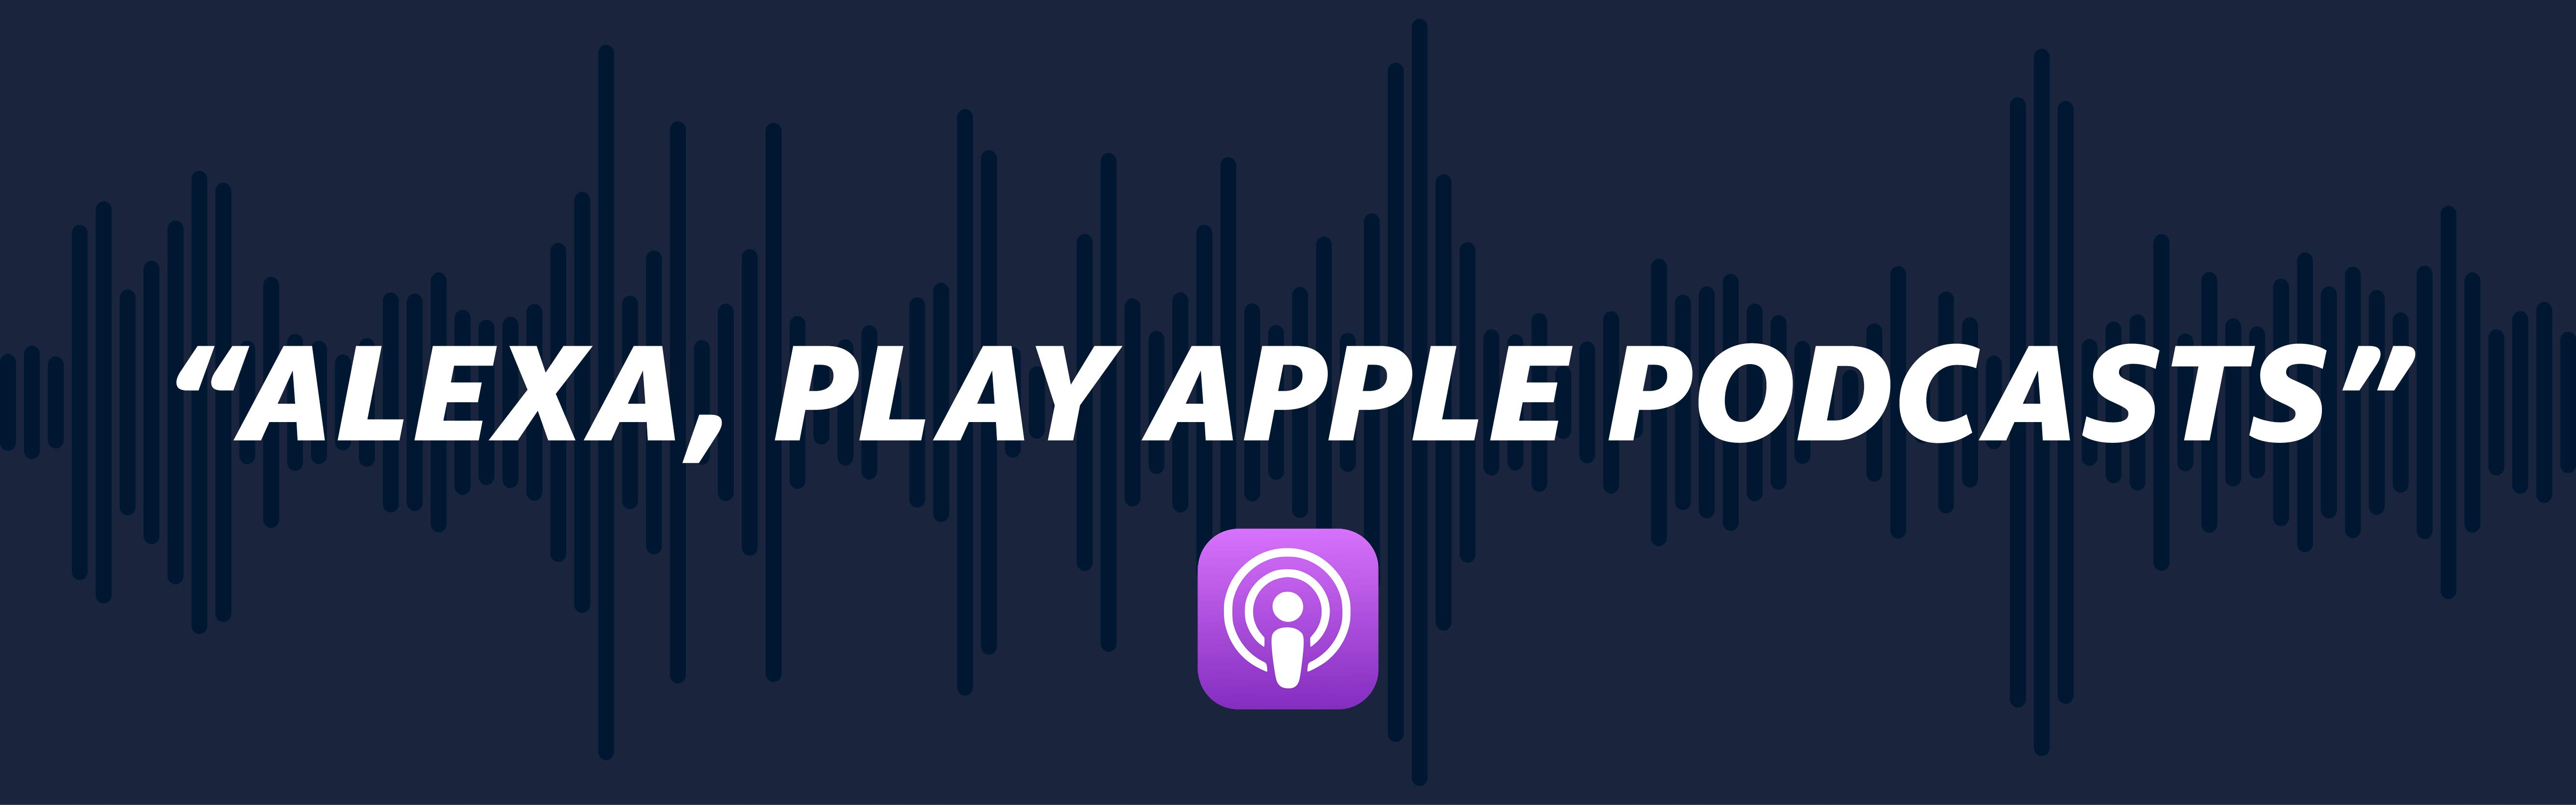 #### Apple Podcasts is now available on Alexa